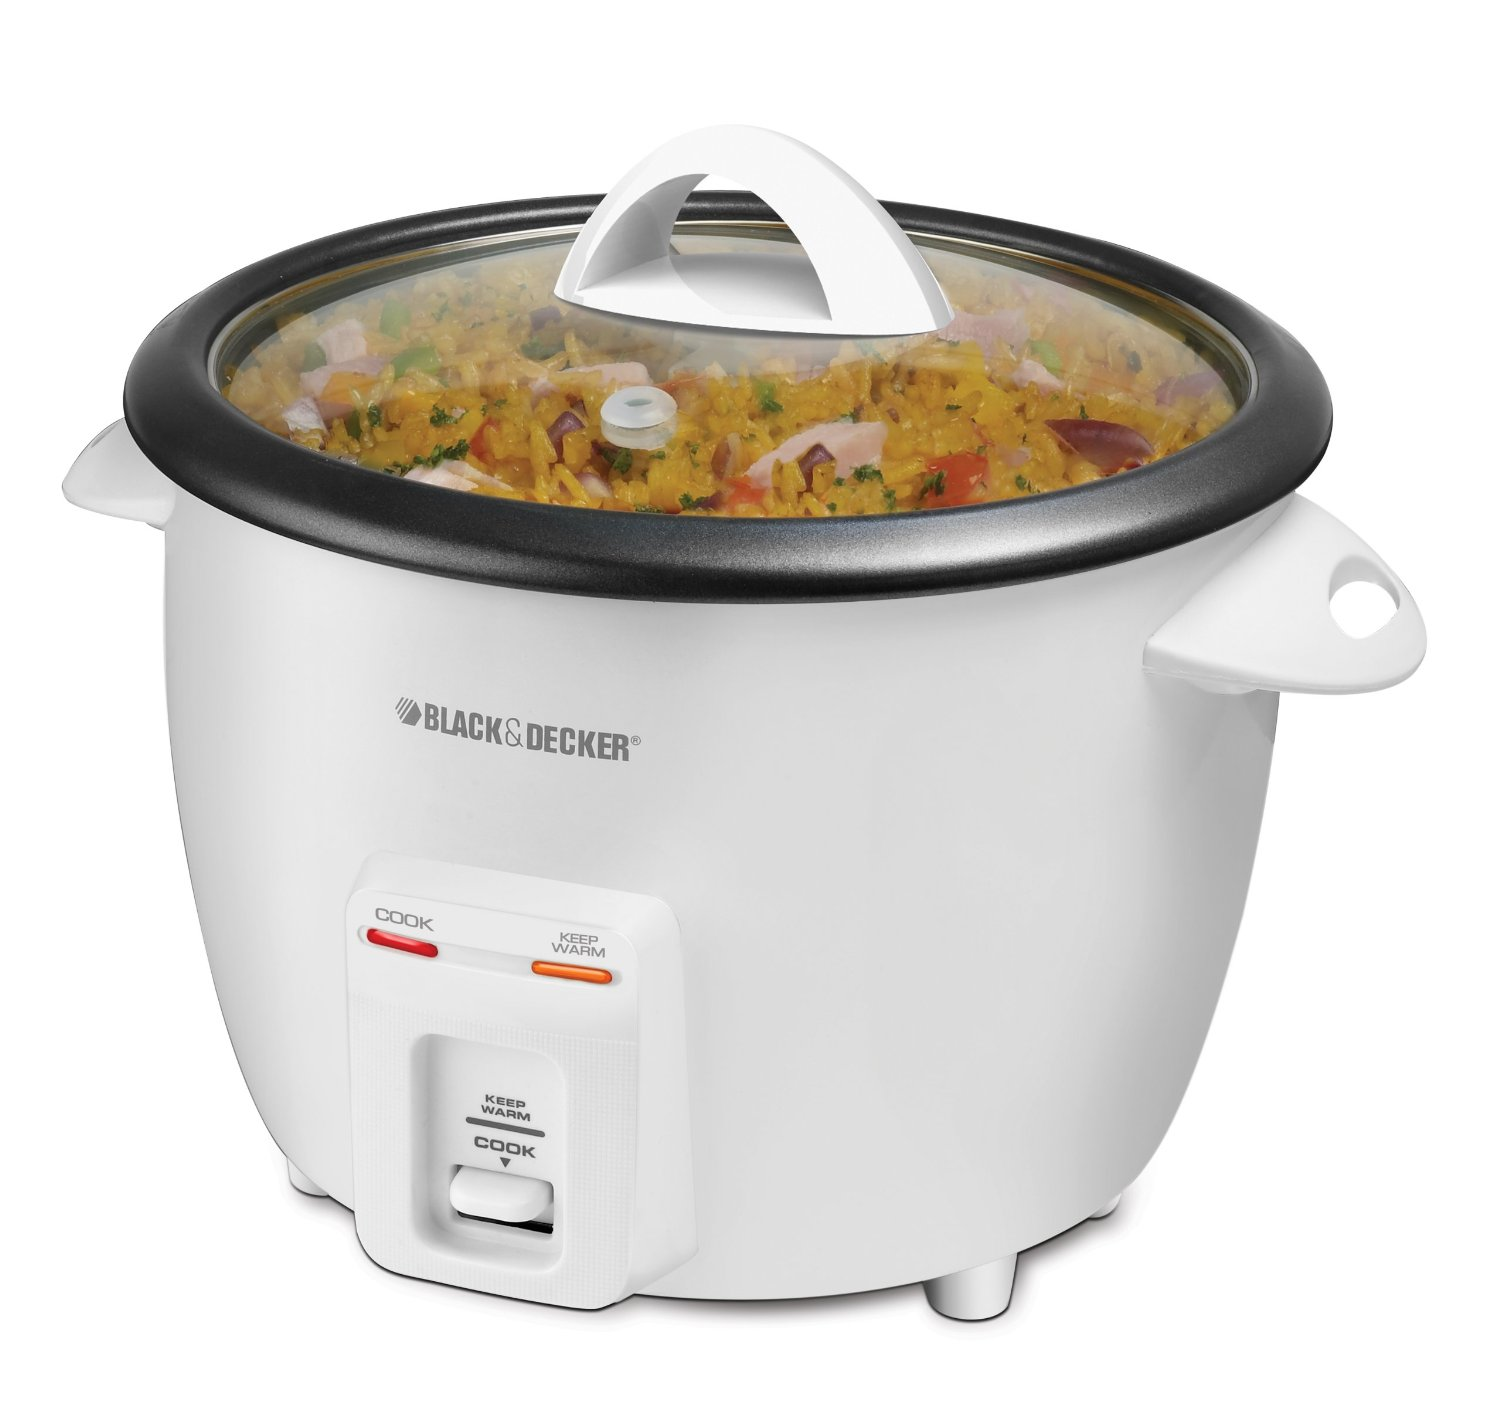 Best Foods For A Steam Cooker